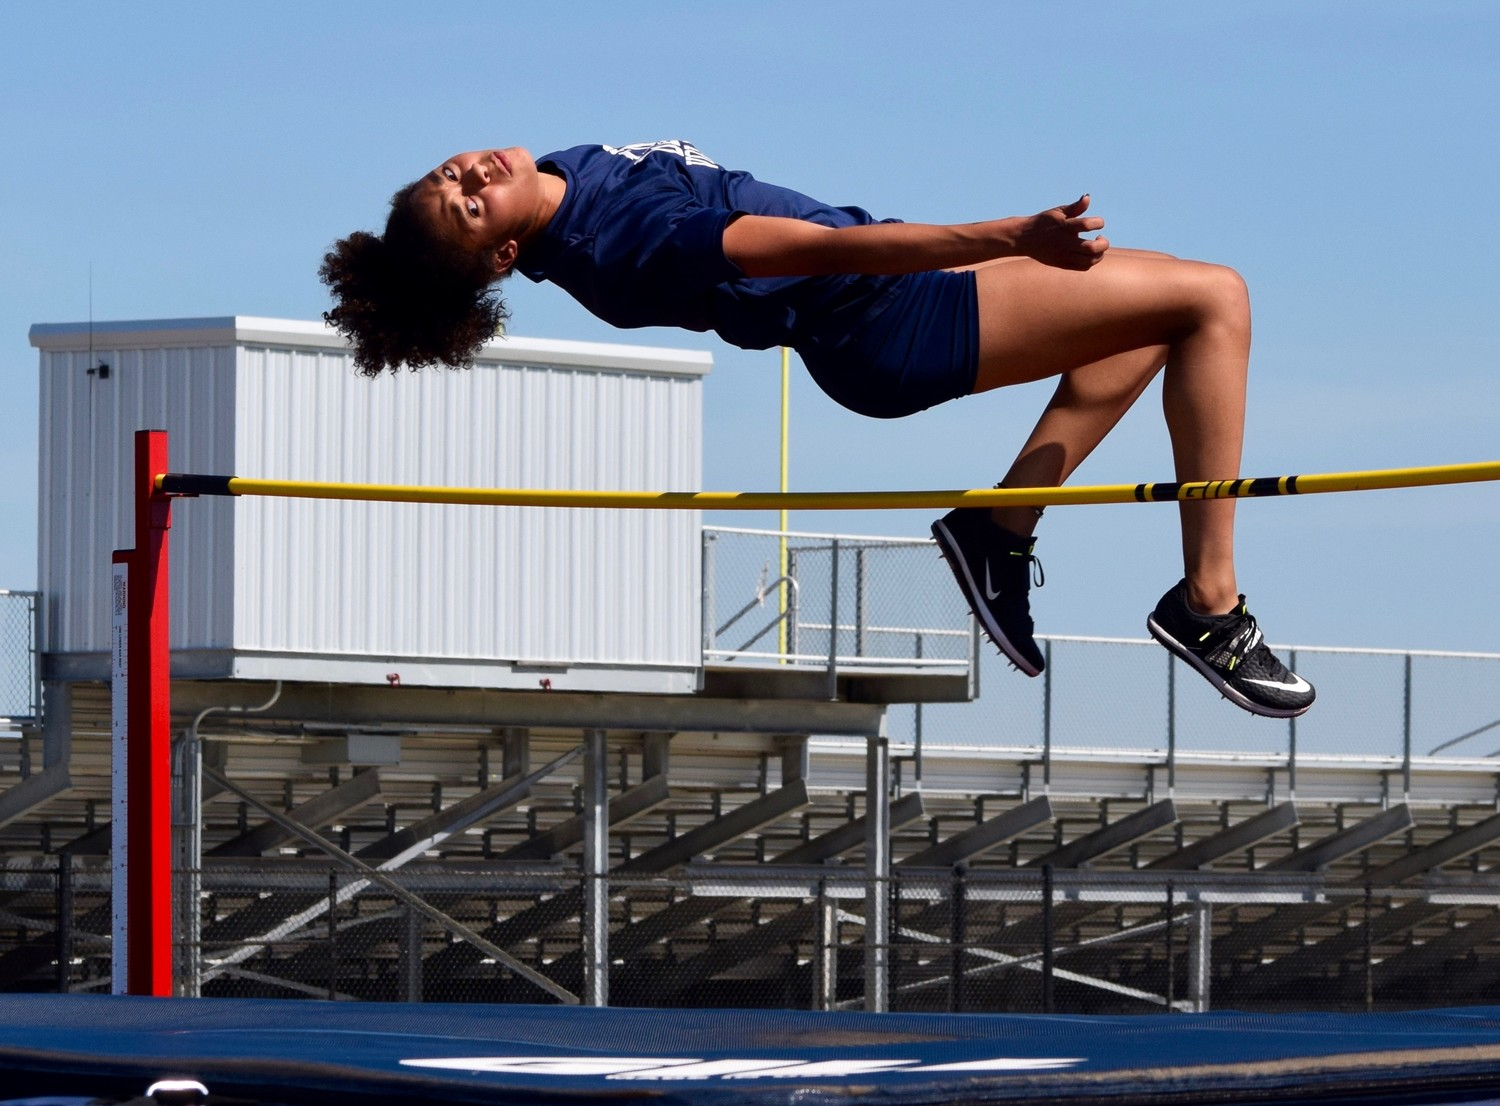 Glenn freshman Chloe Coffee qualified for the state track and field meet in the high jump with a leap of 5 feet, 4 inches at the regional meet.